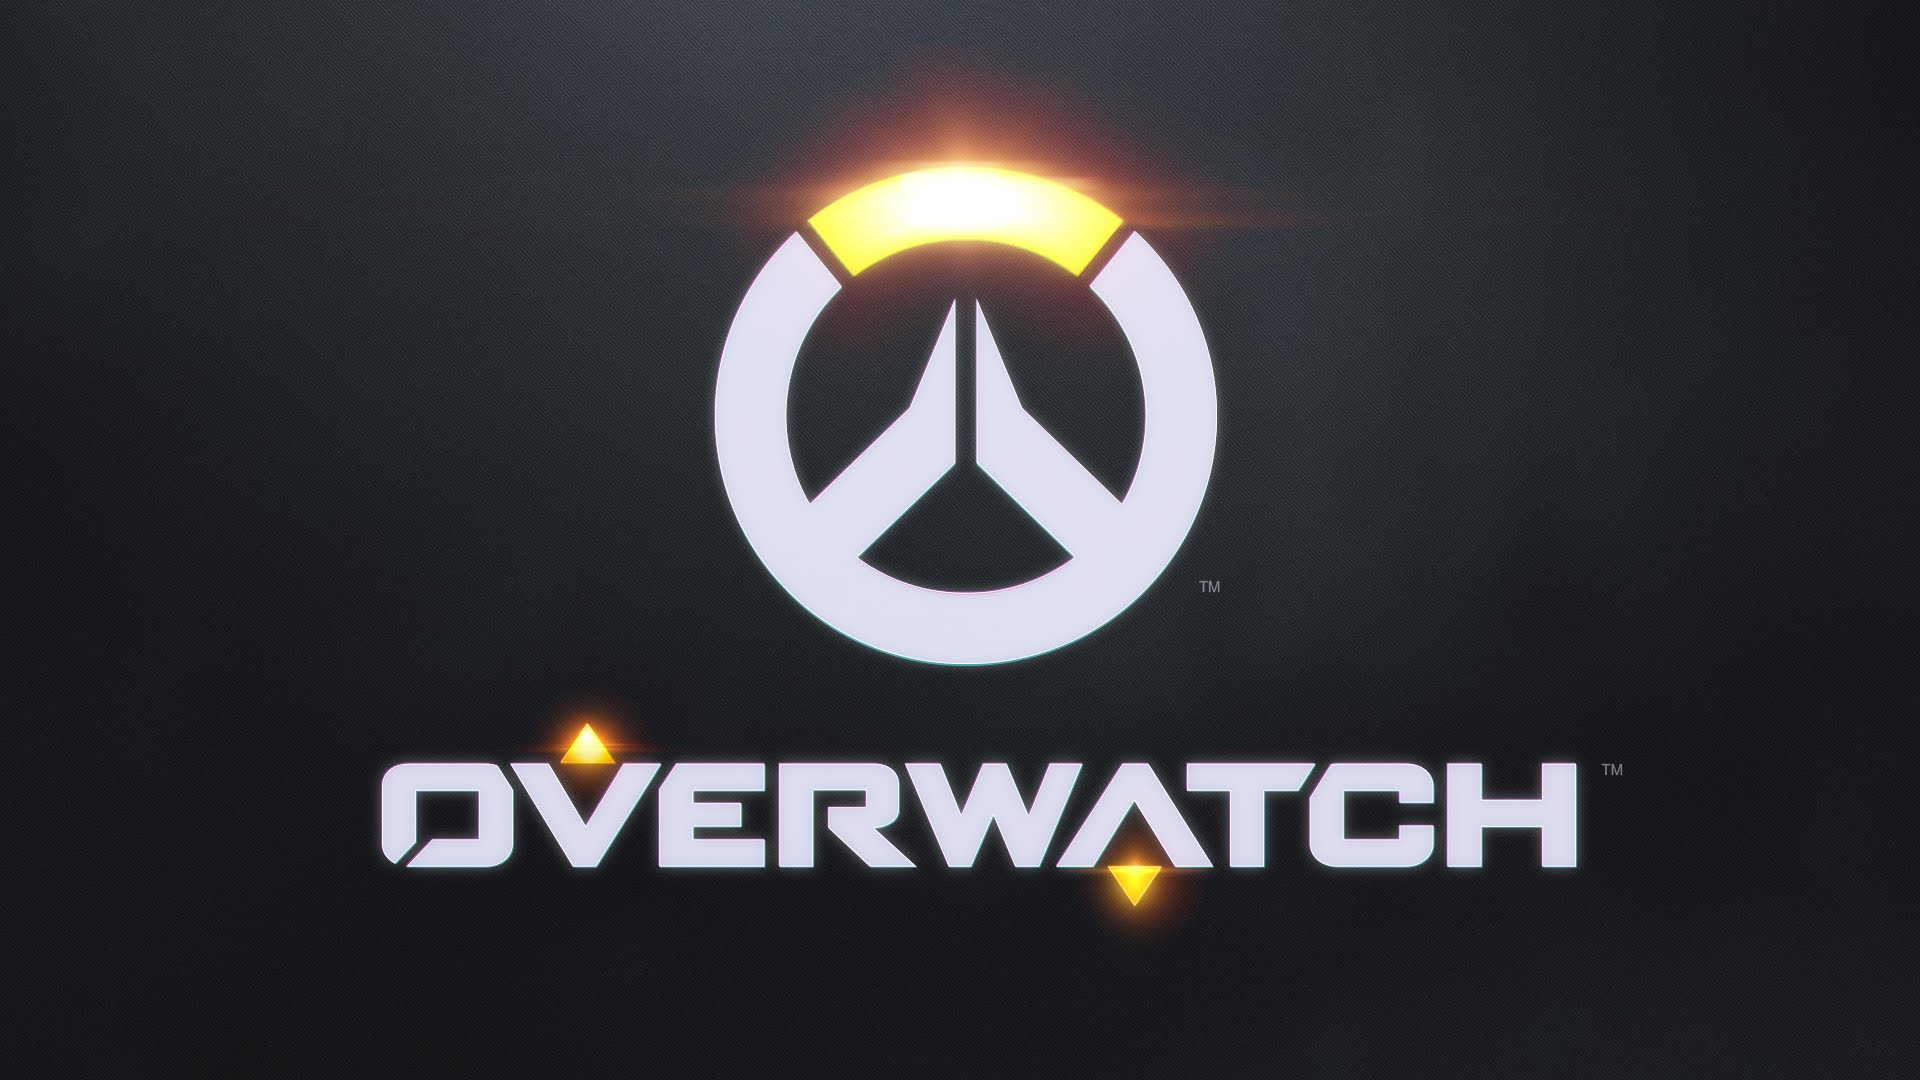 Overwatch Pictures